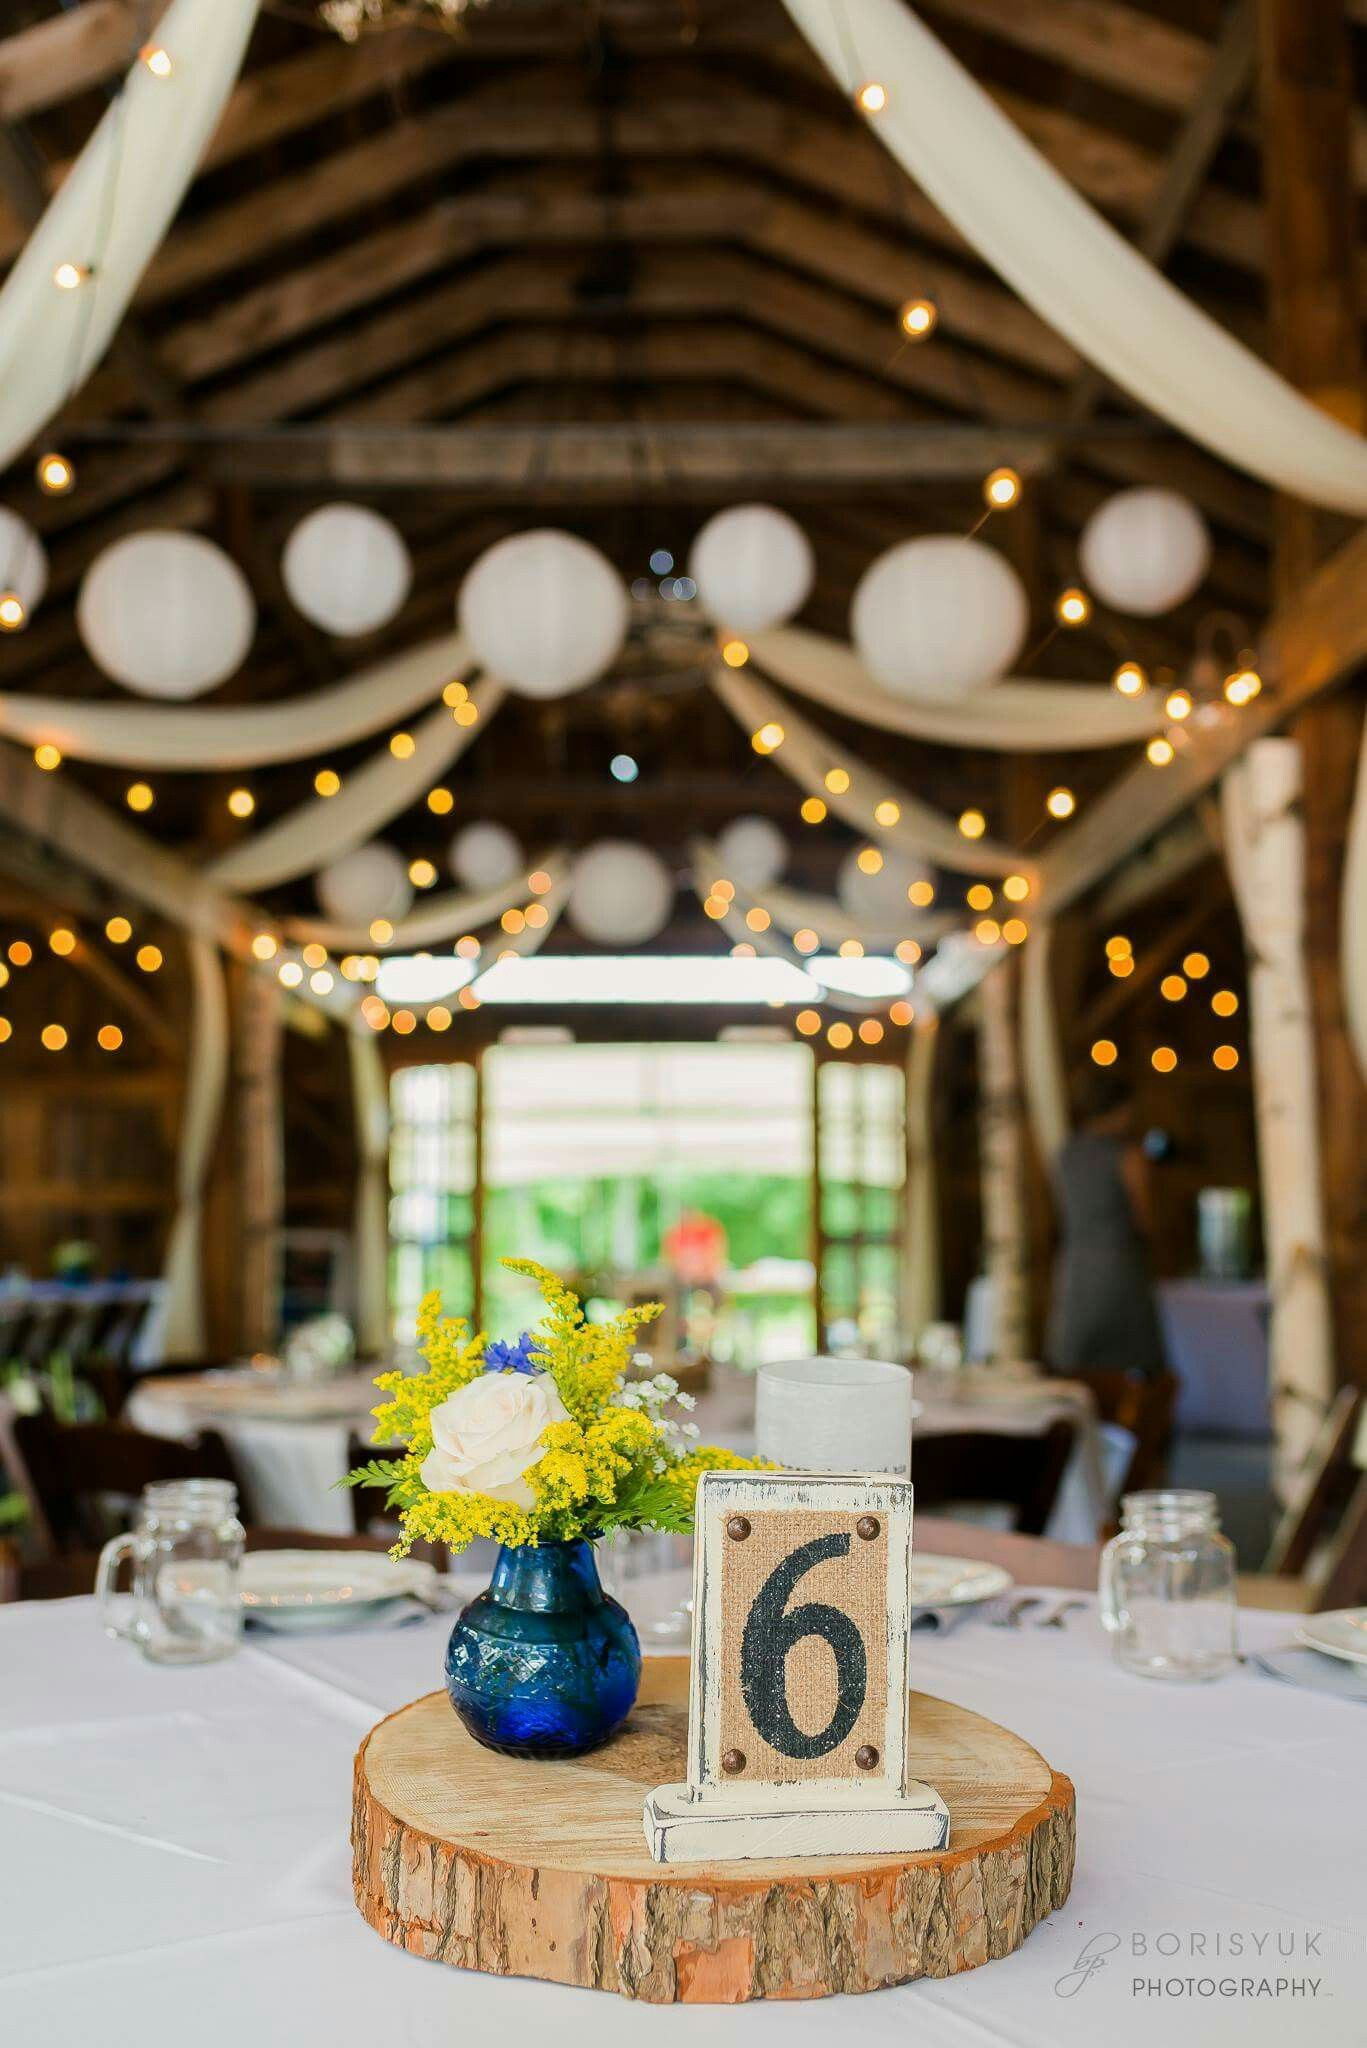 Pin by erin durocher on wedding ideas pinterest weddings celebrate offers wedding and special event decorating we specialize in contemporary rustic and vintage decor and service vermont and new hampshire junglespirit Gallery